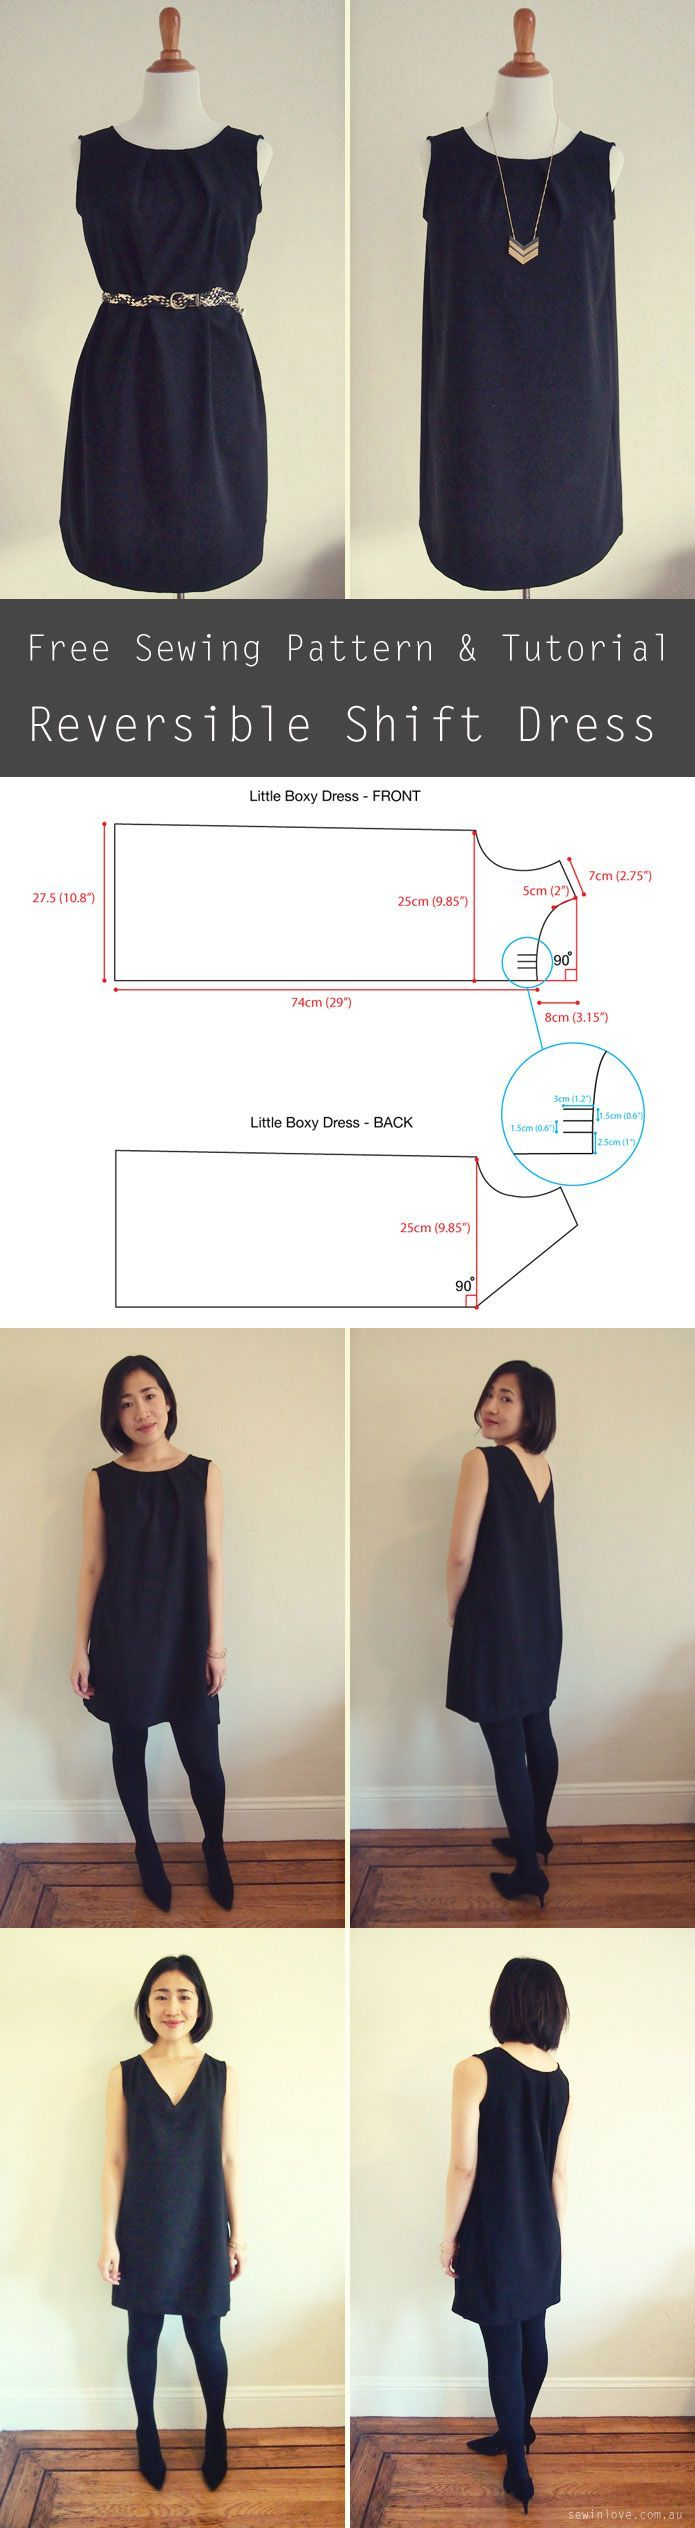 Running Belt DIY - an Easy Sewing Tutorial | Pinterest | Sewing ...